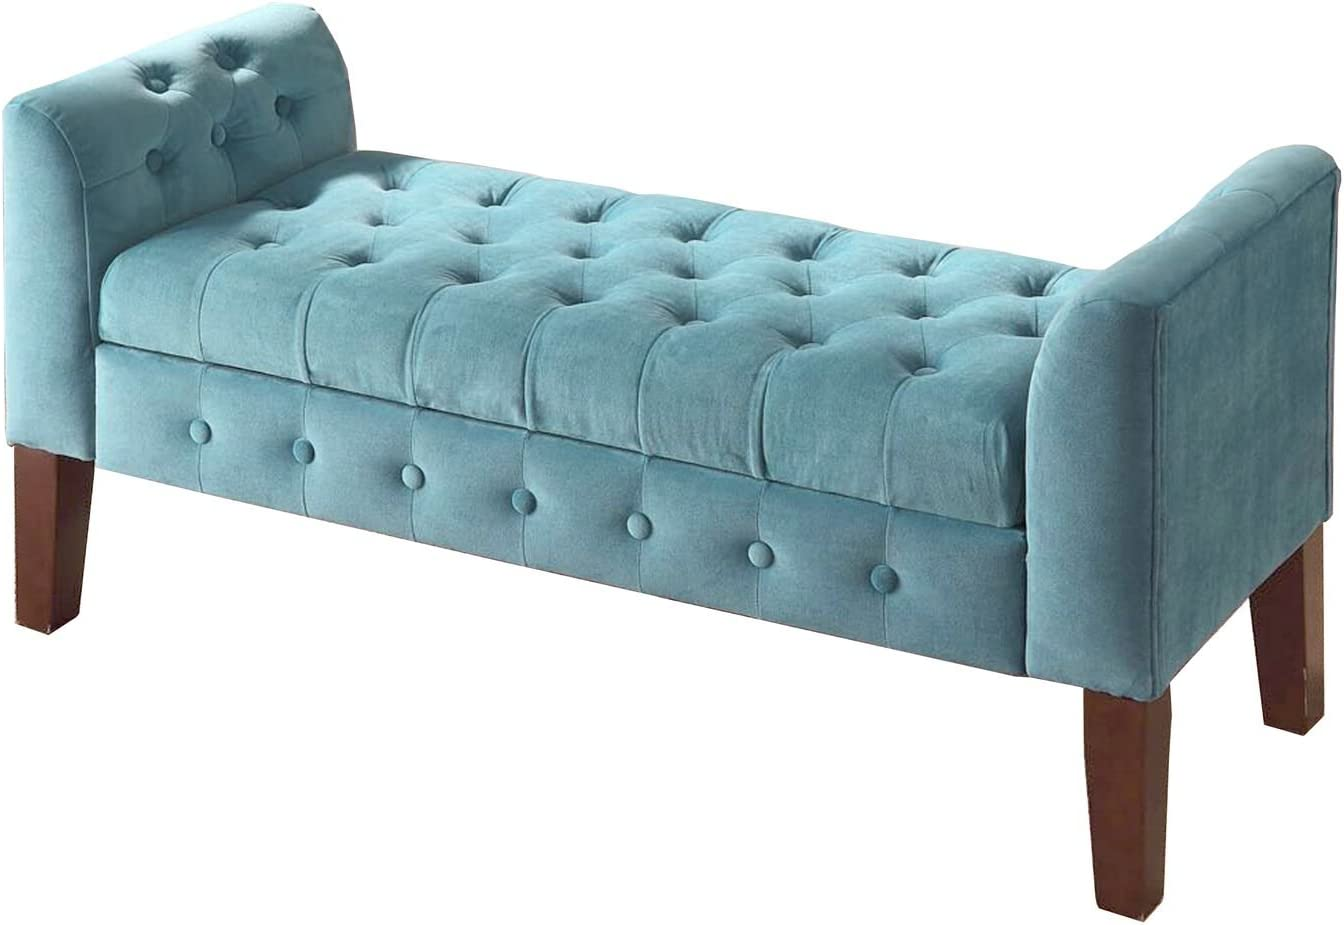 HomePop Velvet Tufted Storage Bench Settee with Hinged Lid, Teal